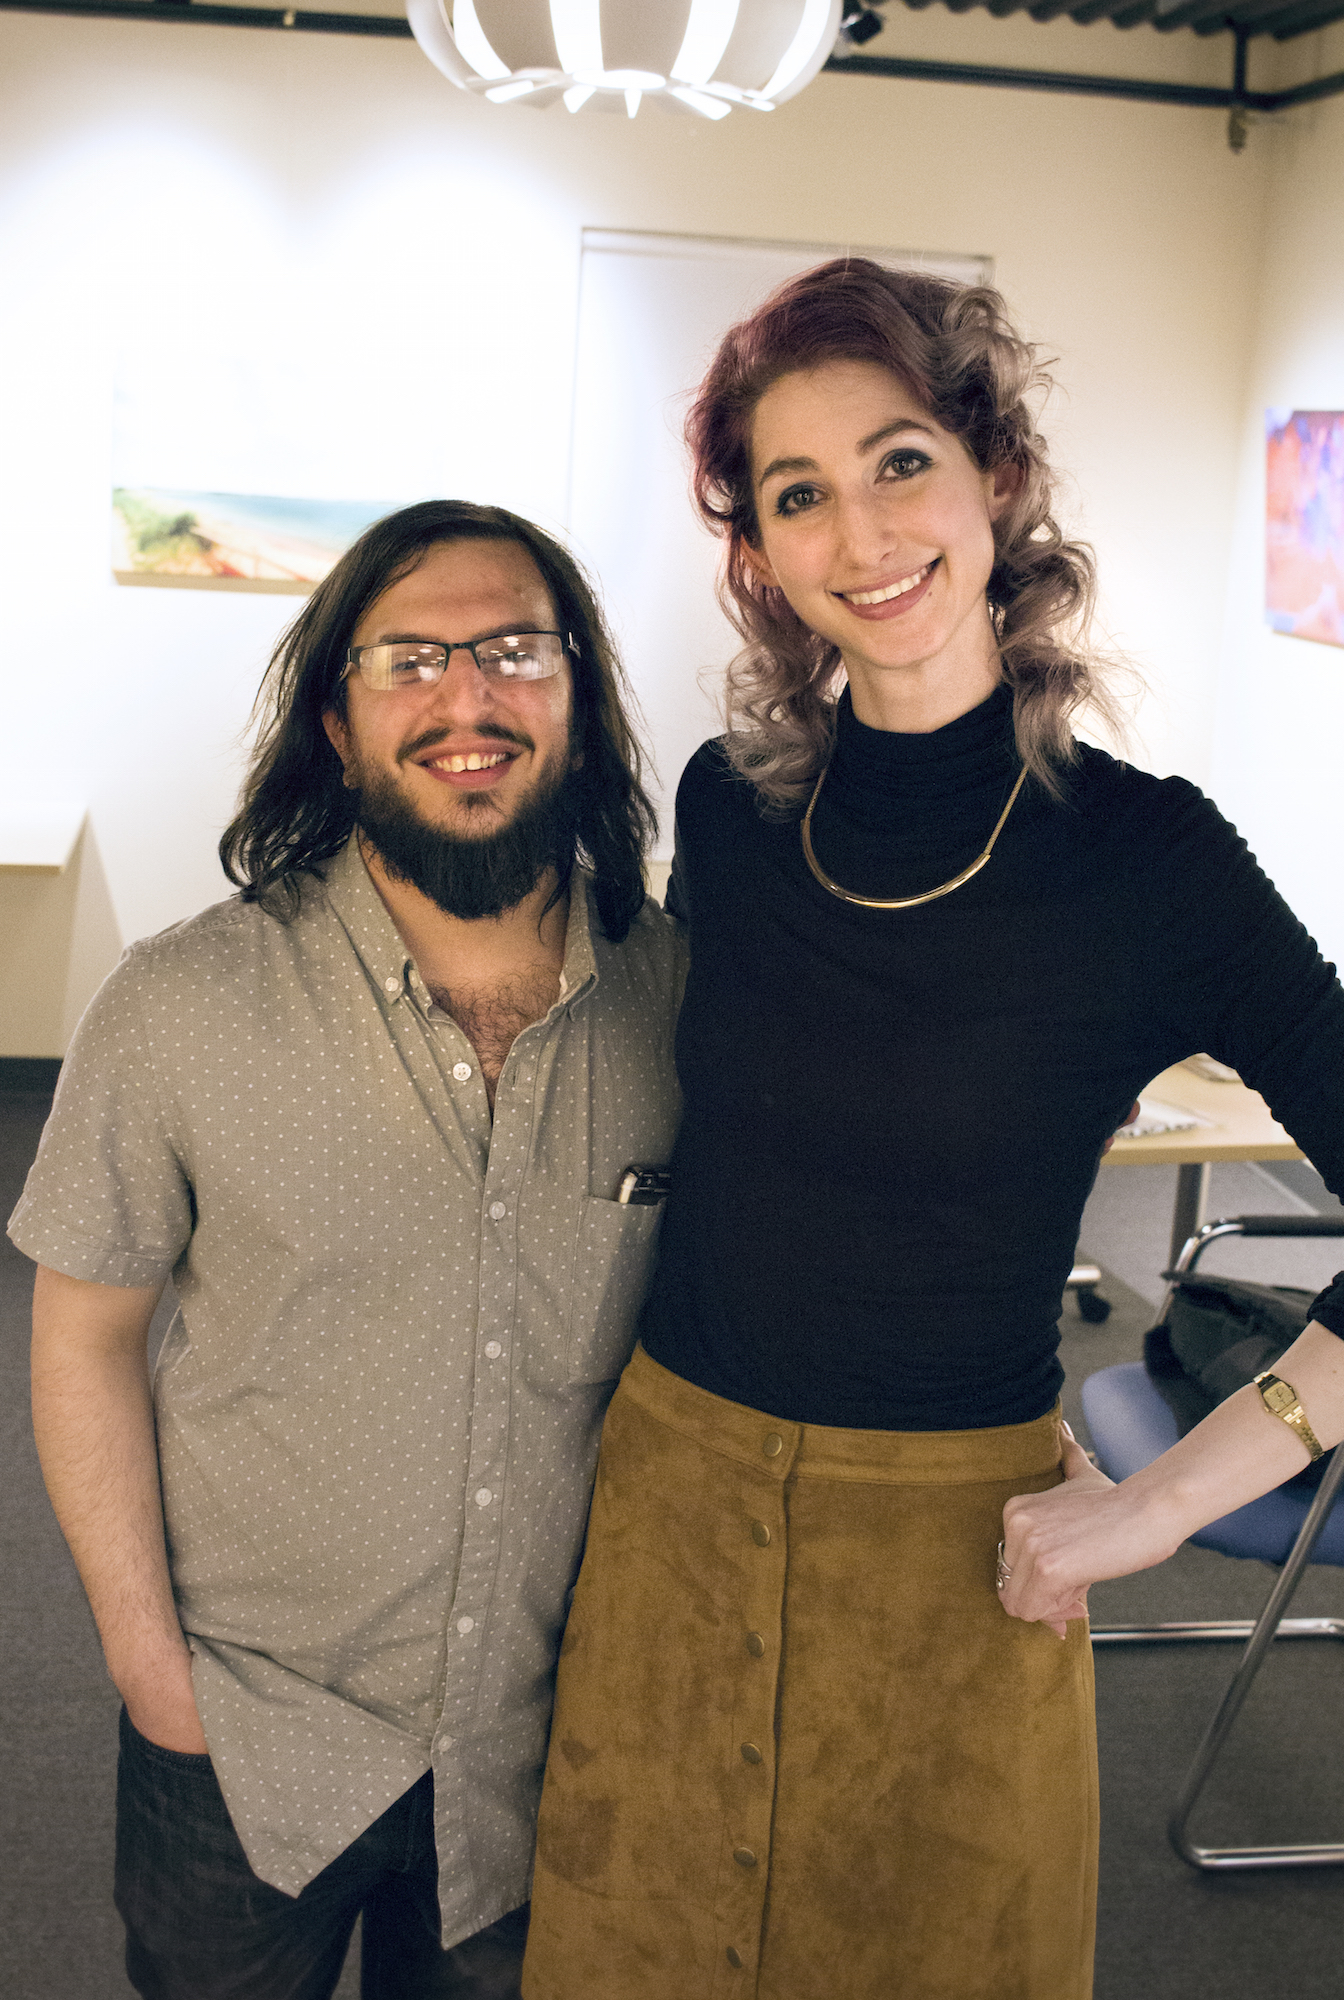 Joe Musacchia with Geena Matuson at her solo show reception at Medfield TV. April, 2016.